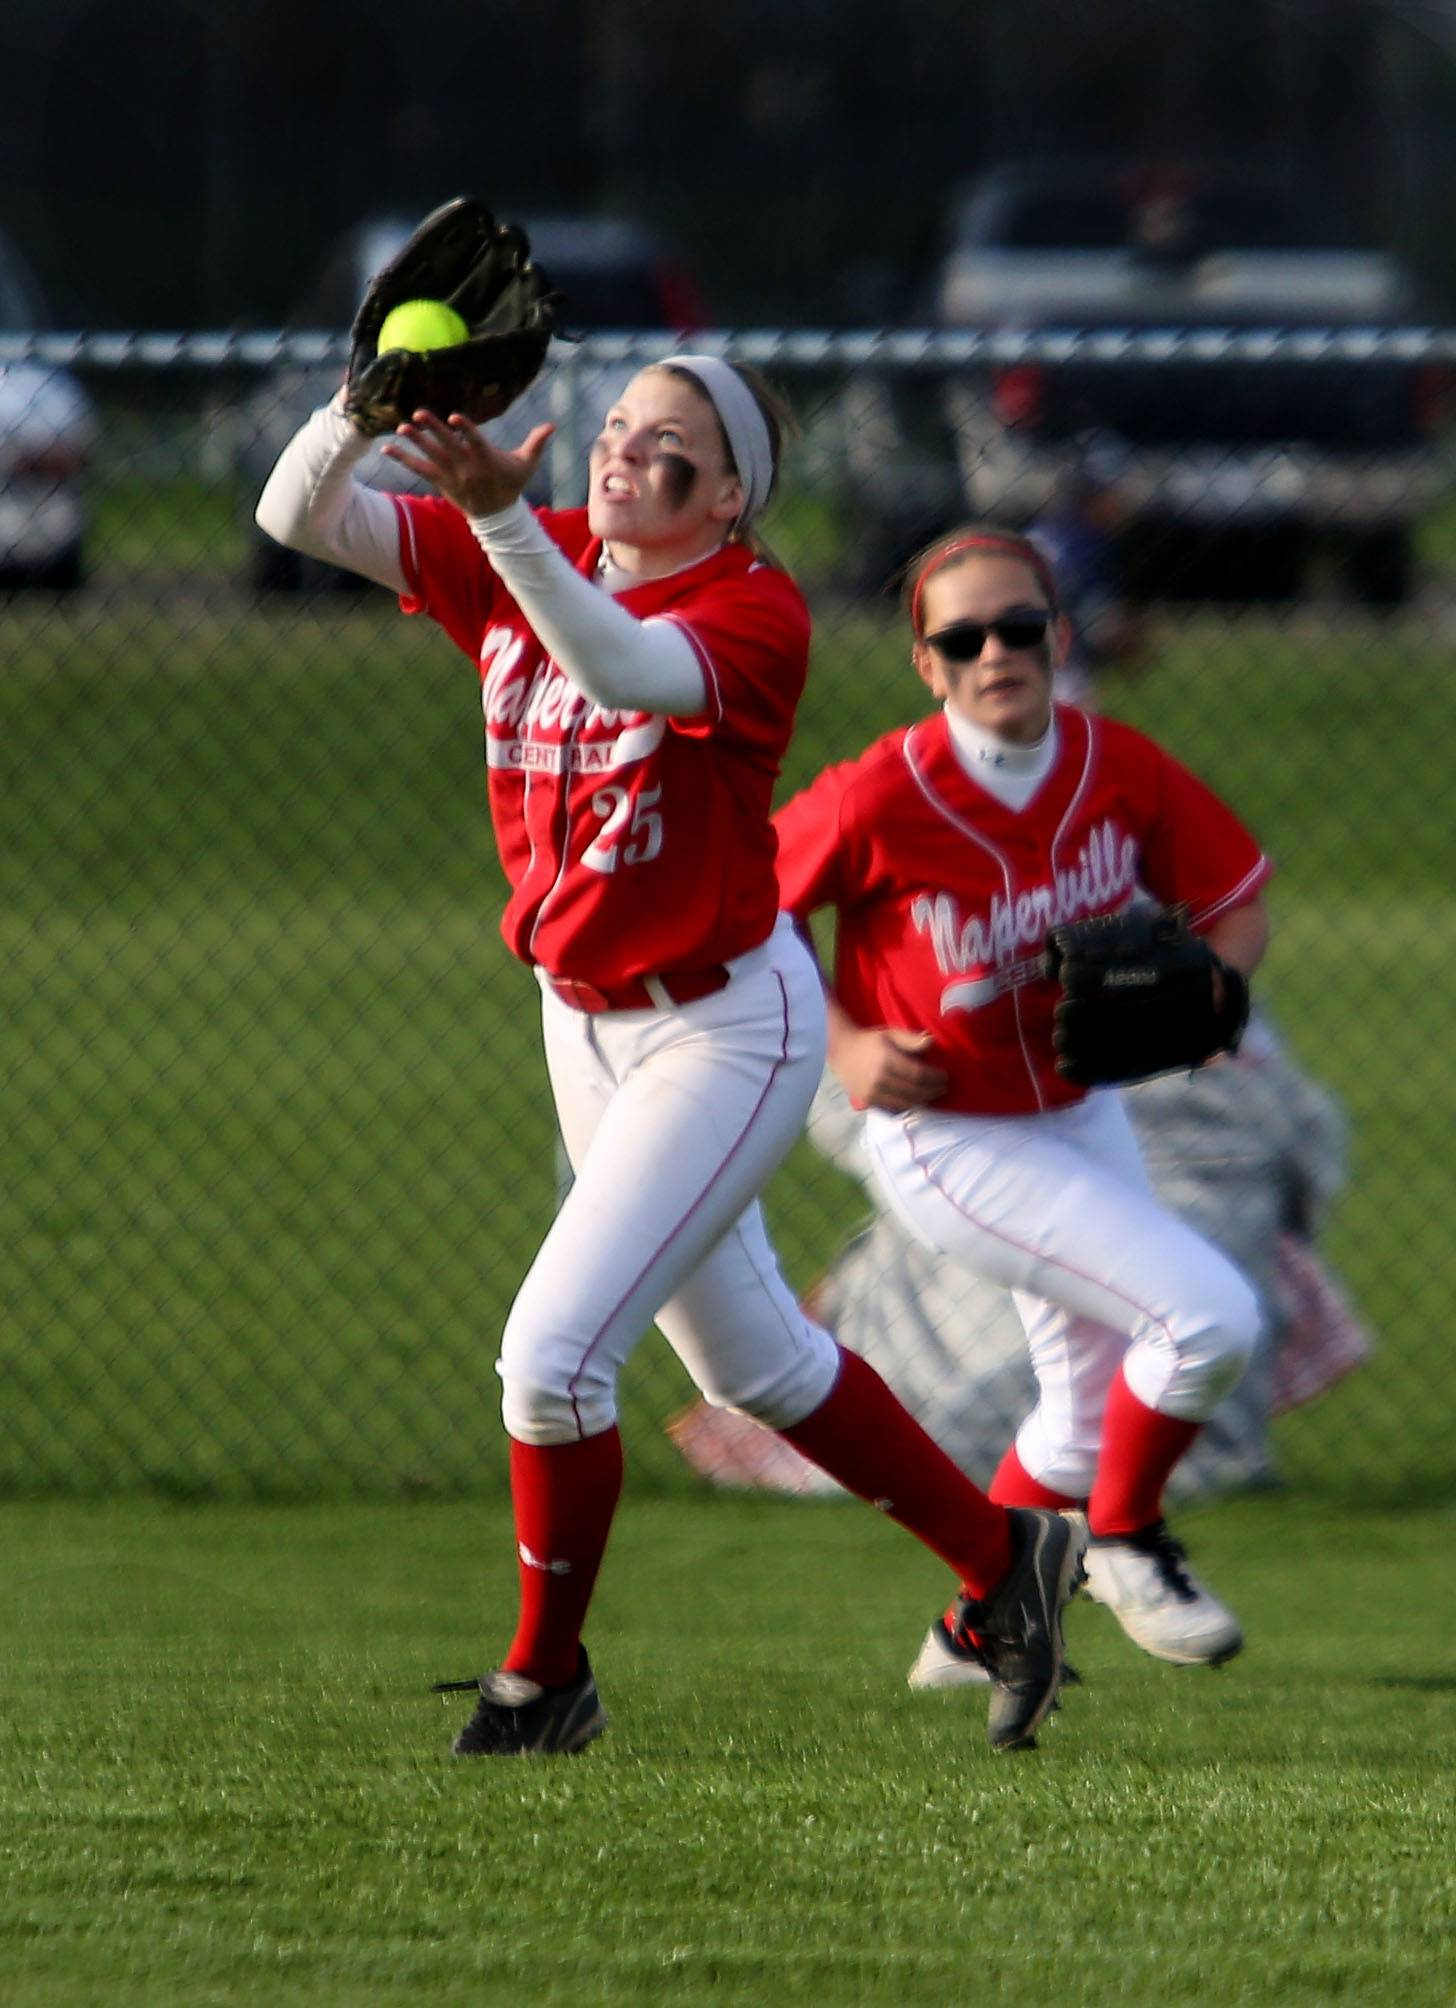 Naperville Central's Maddi Doane makes a catch in the outfield for an out against Naperville North during softball action on Monday in Naperville.